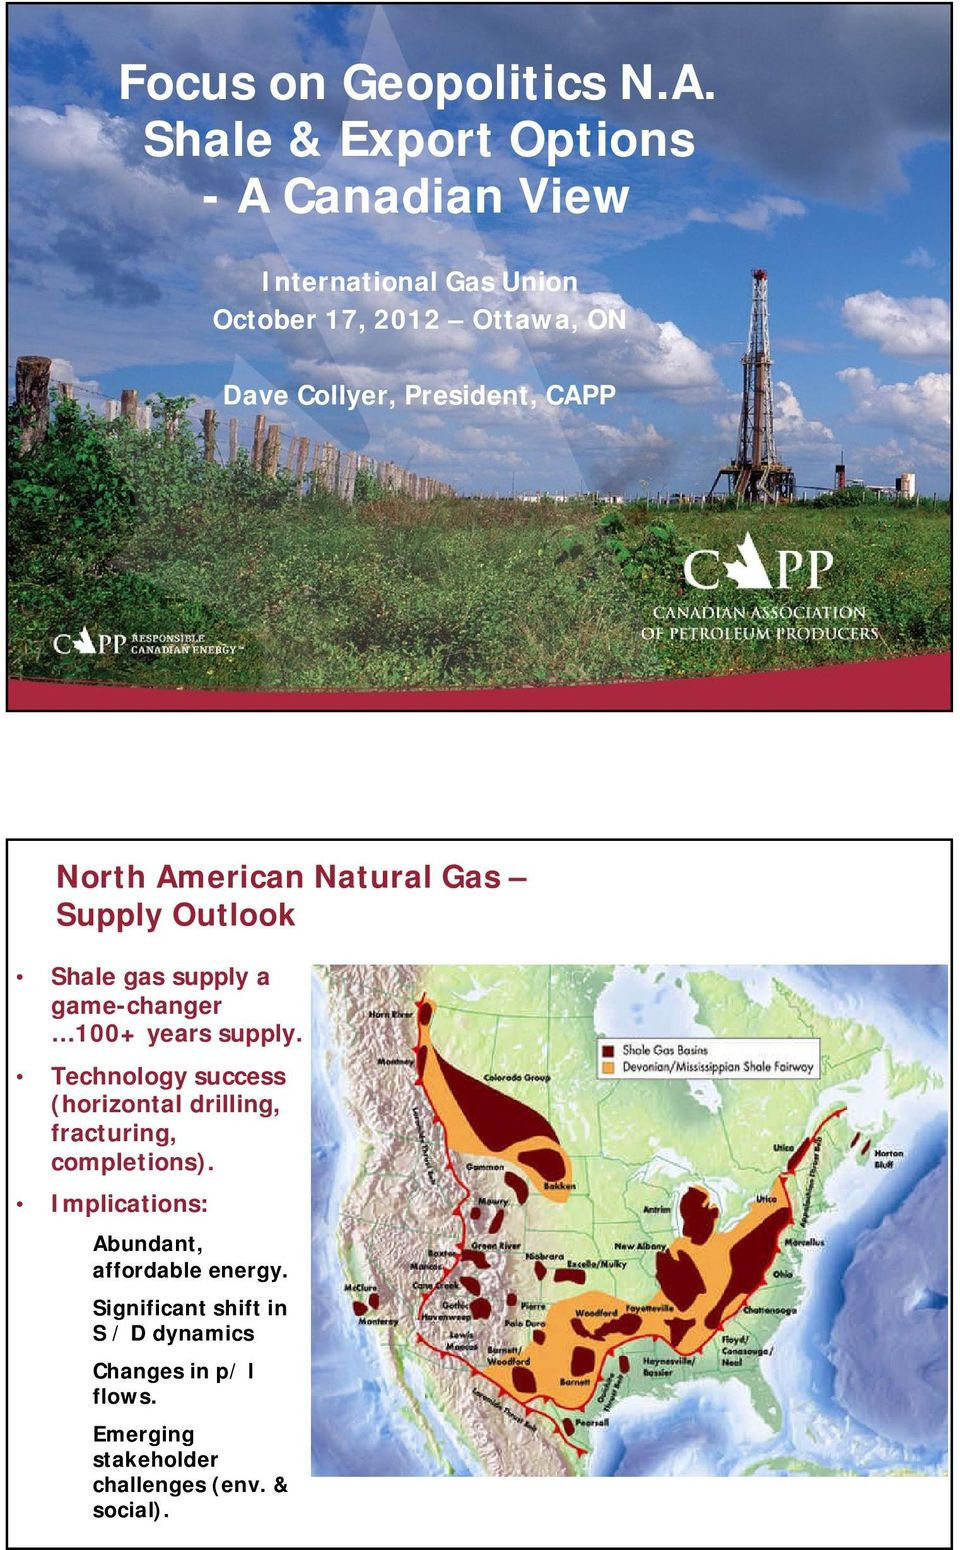 President, CAPP North American Natural Gas Supply Outlook Shale gas supply a game-changer 100+ years supply.